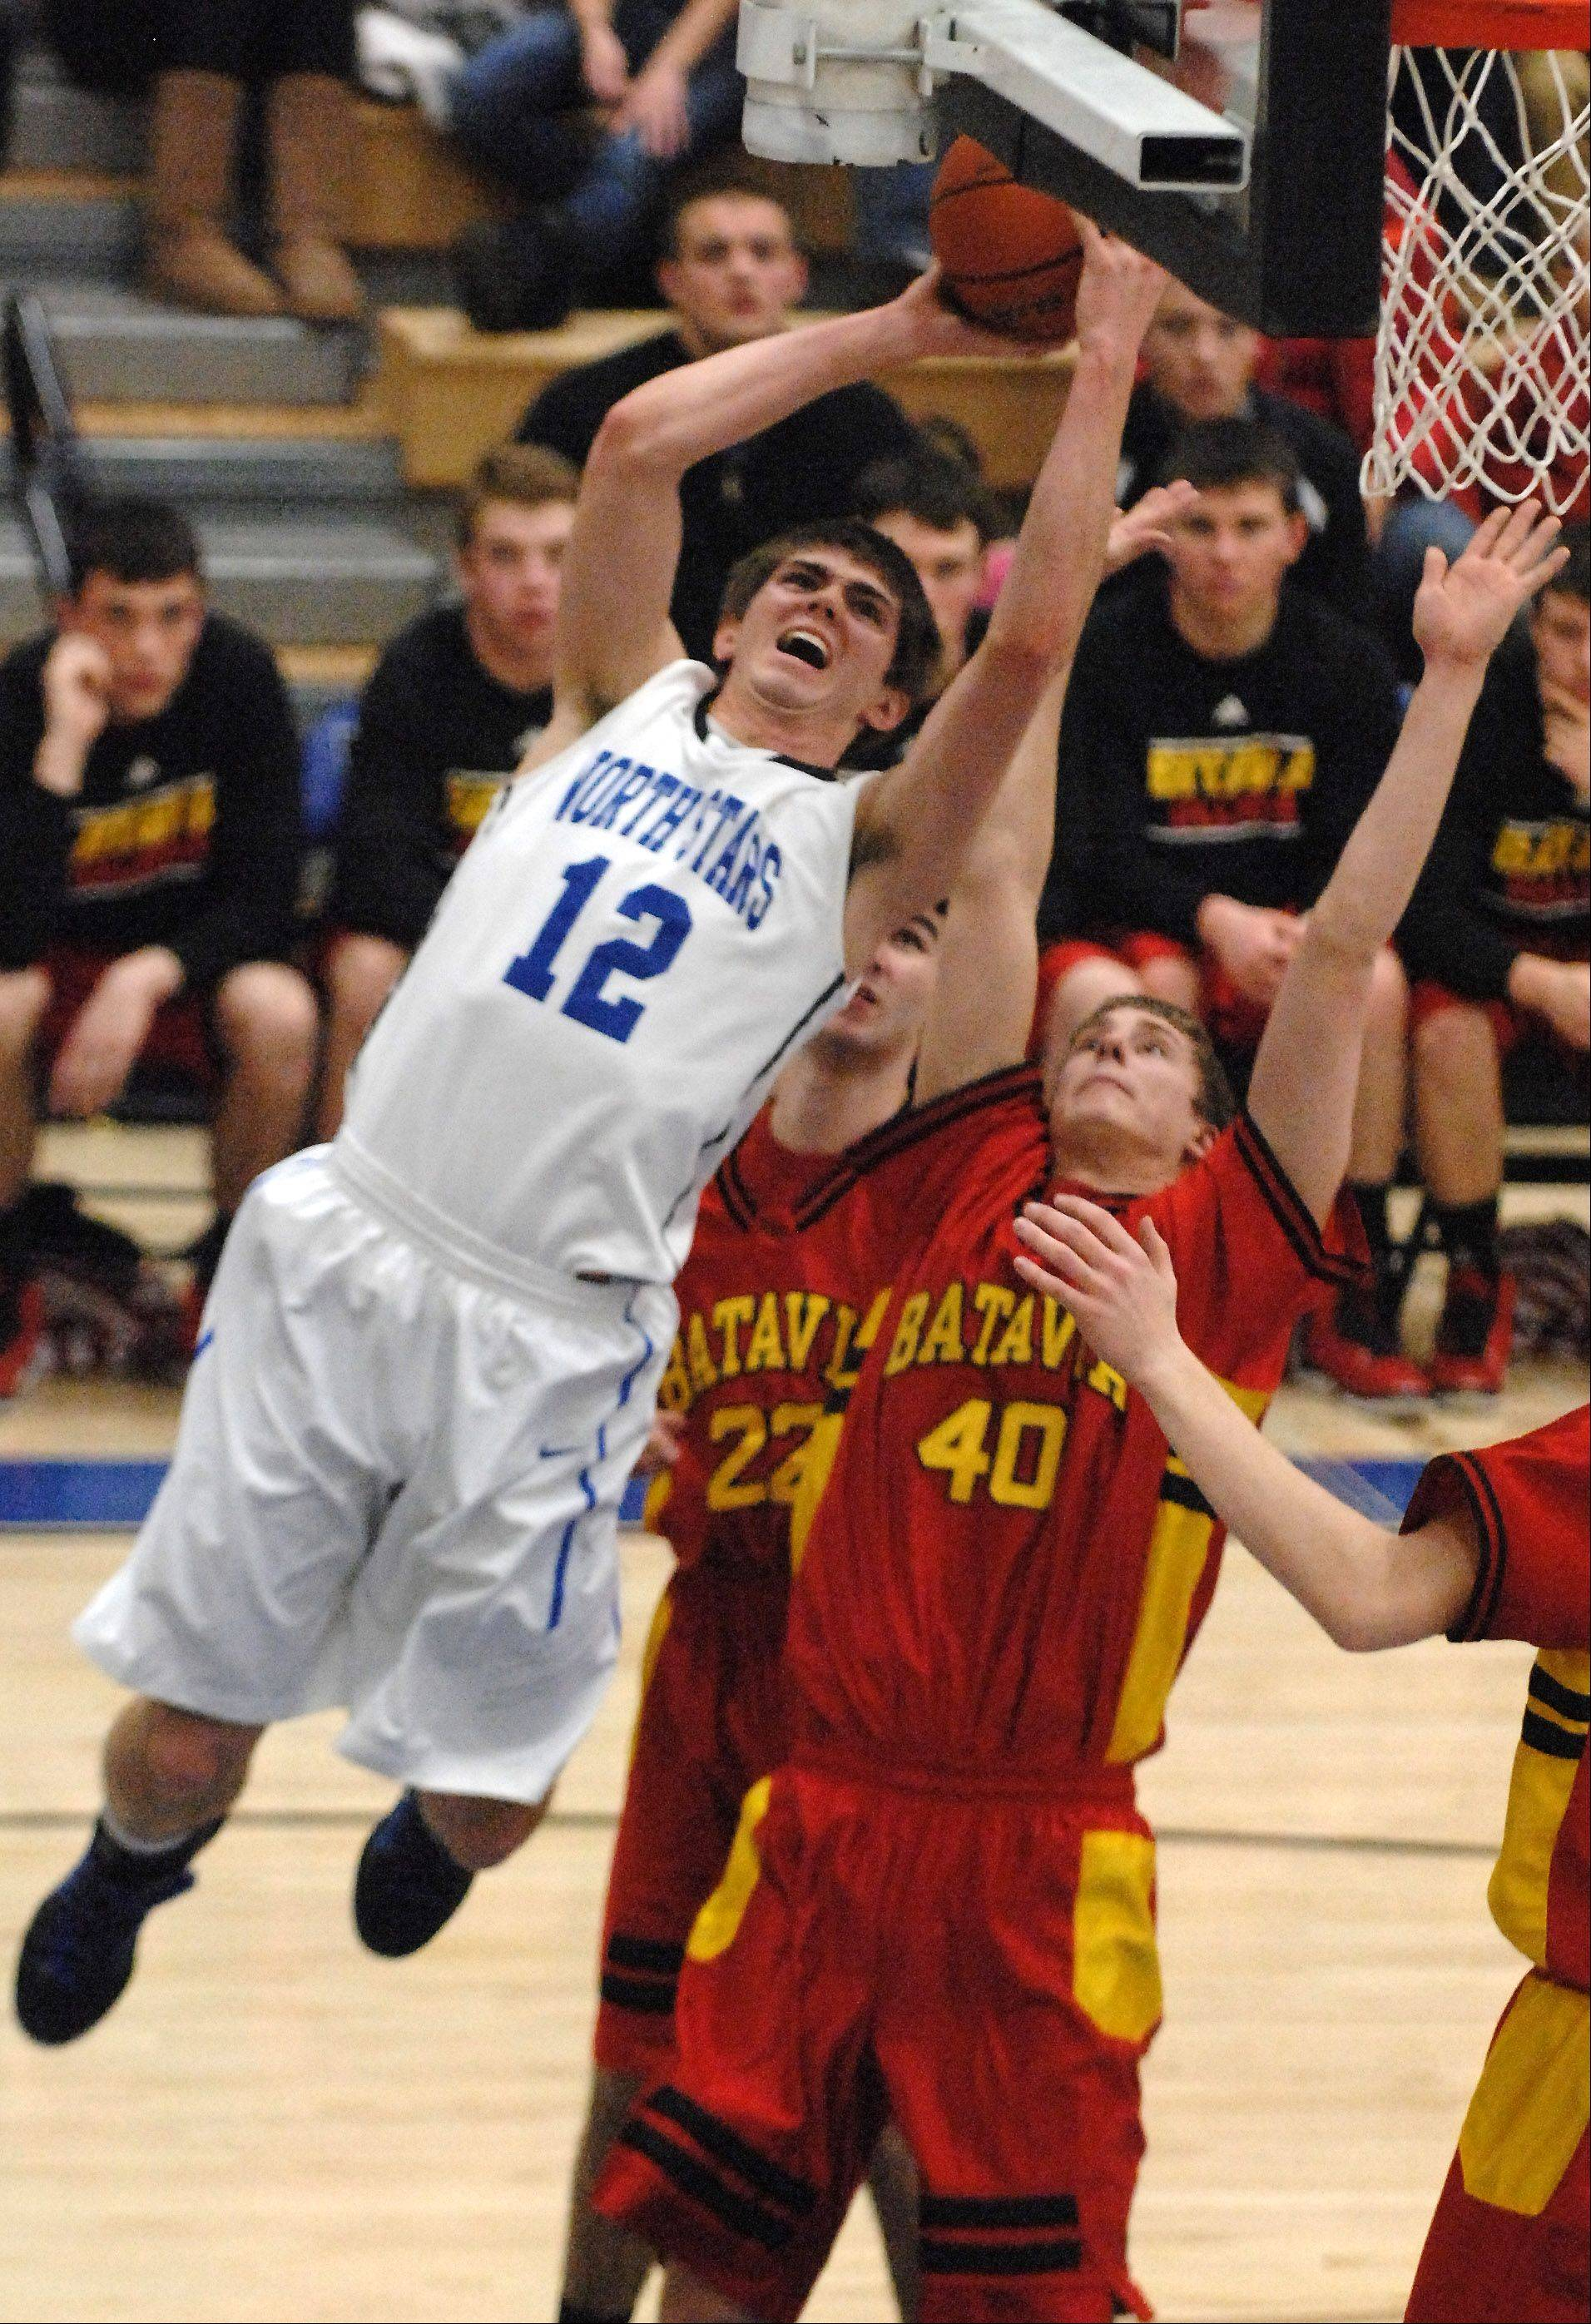 St. Charles North's Quinten Payne drives to the basket against Batavia.